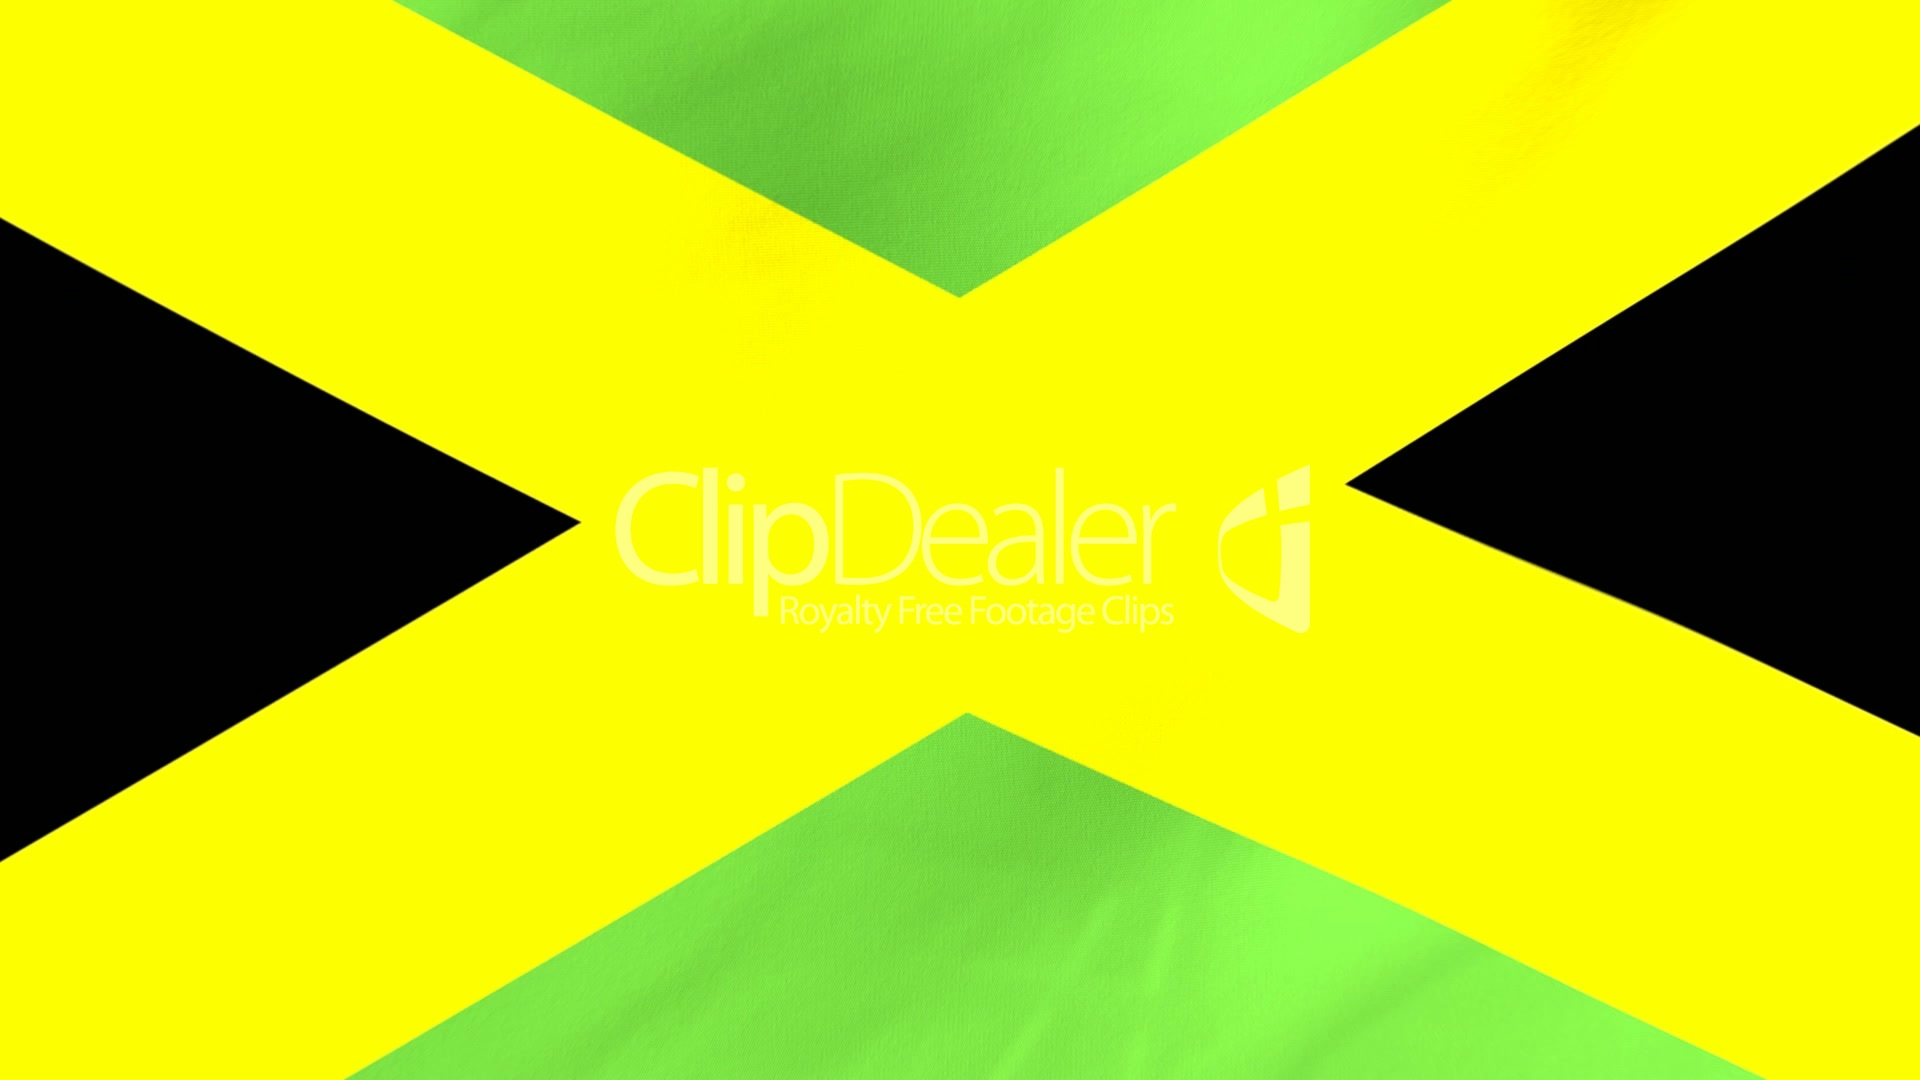 Animated Flag Of Jamaica With A Pin On A Worldmap Royalty Free